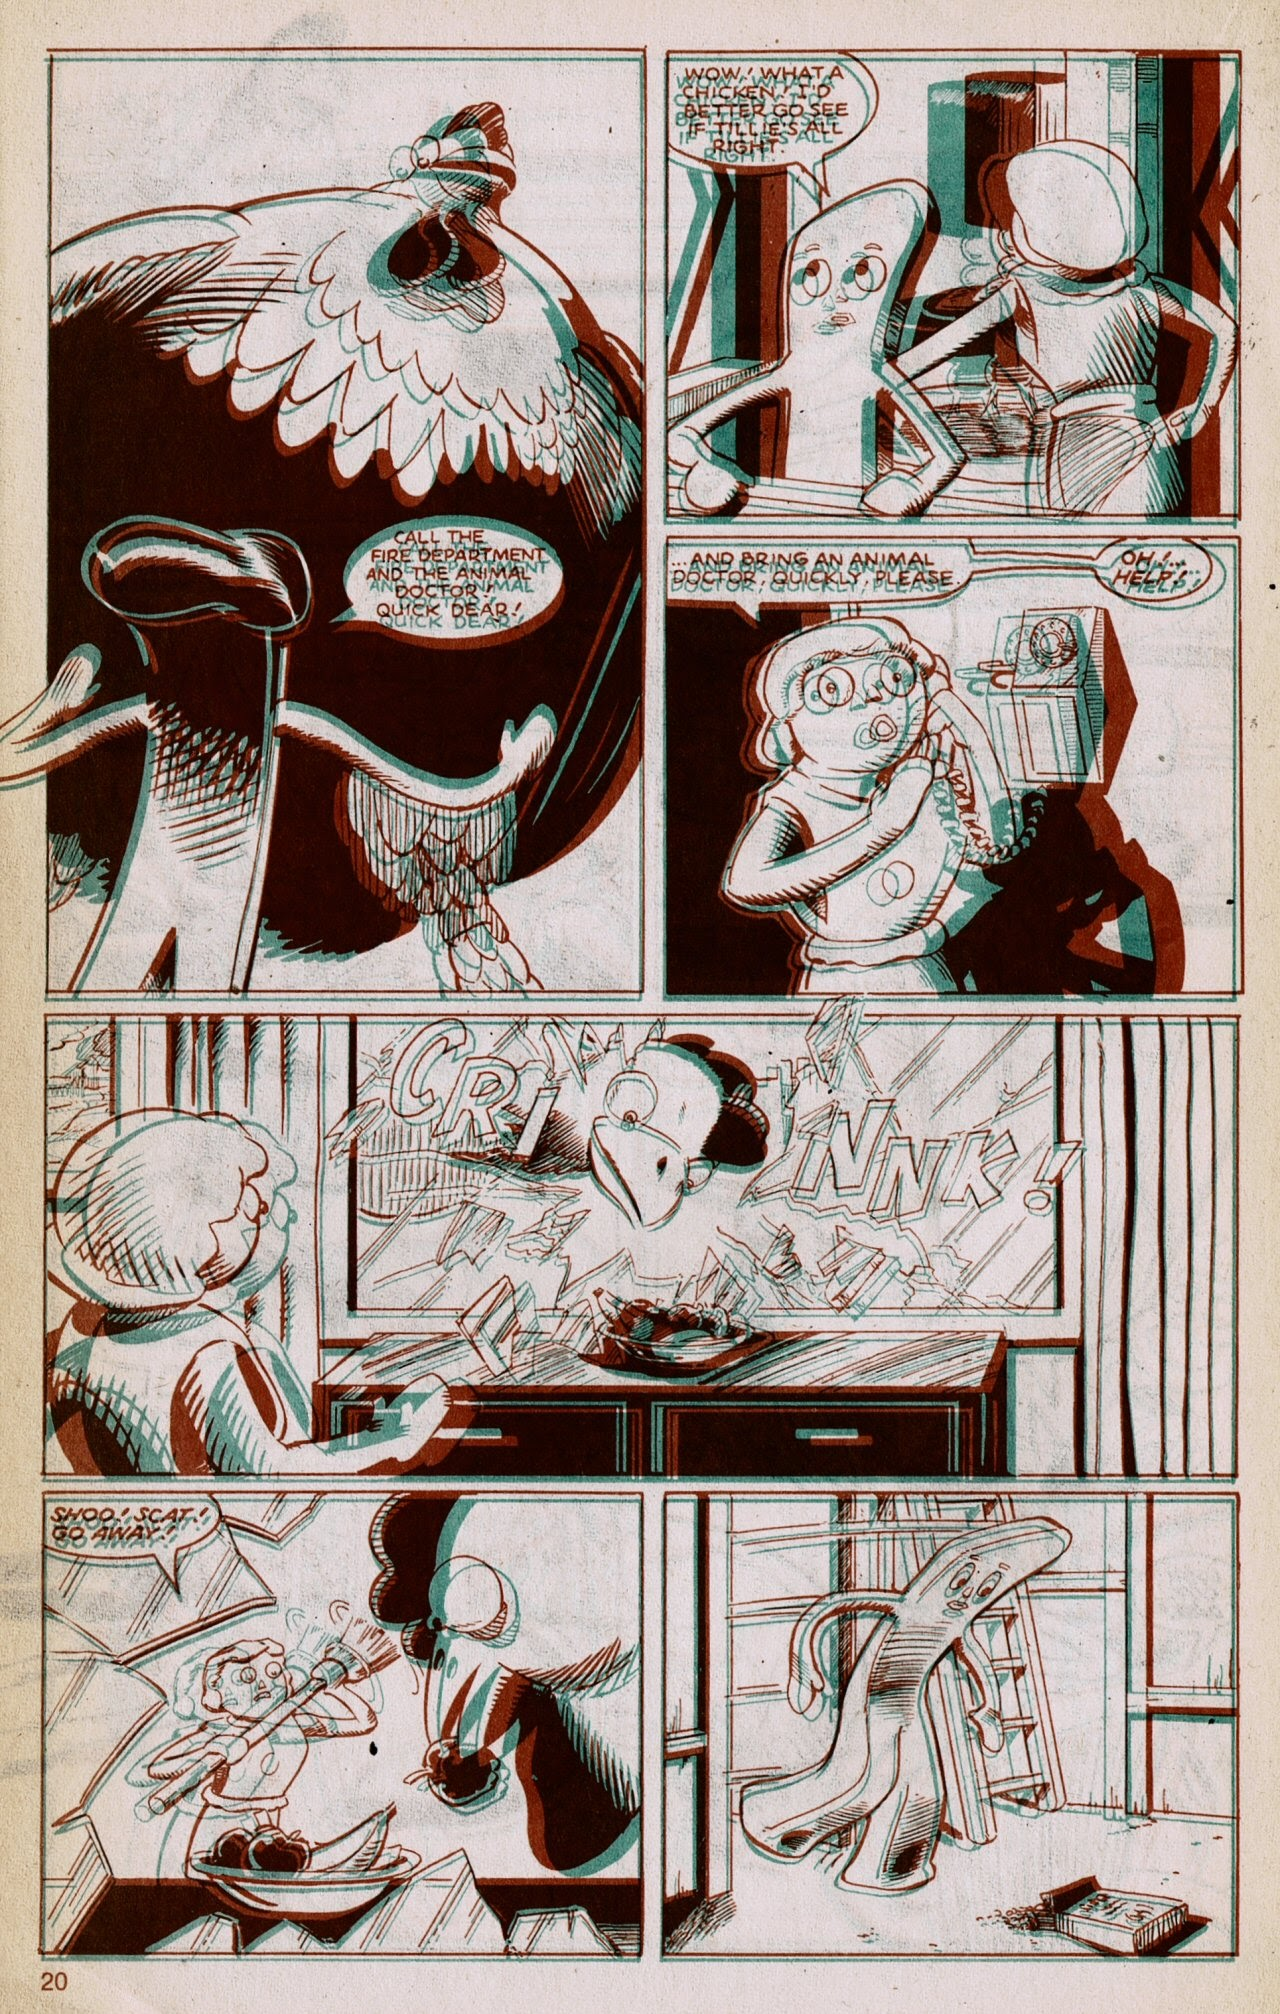 Gumby 3-D issue 1 - Page 22